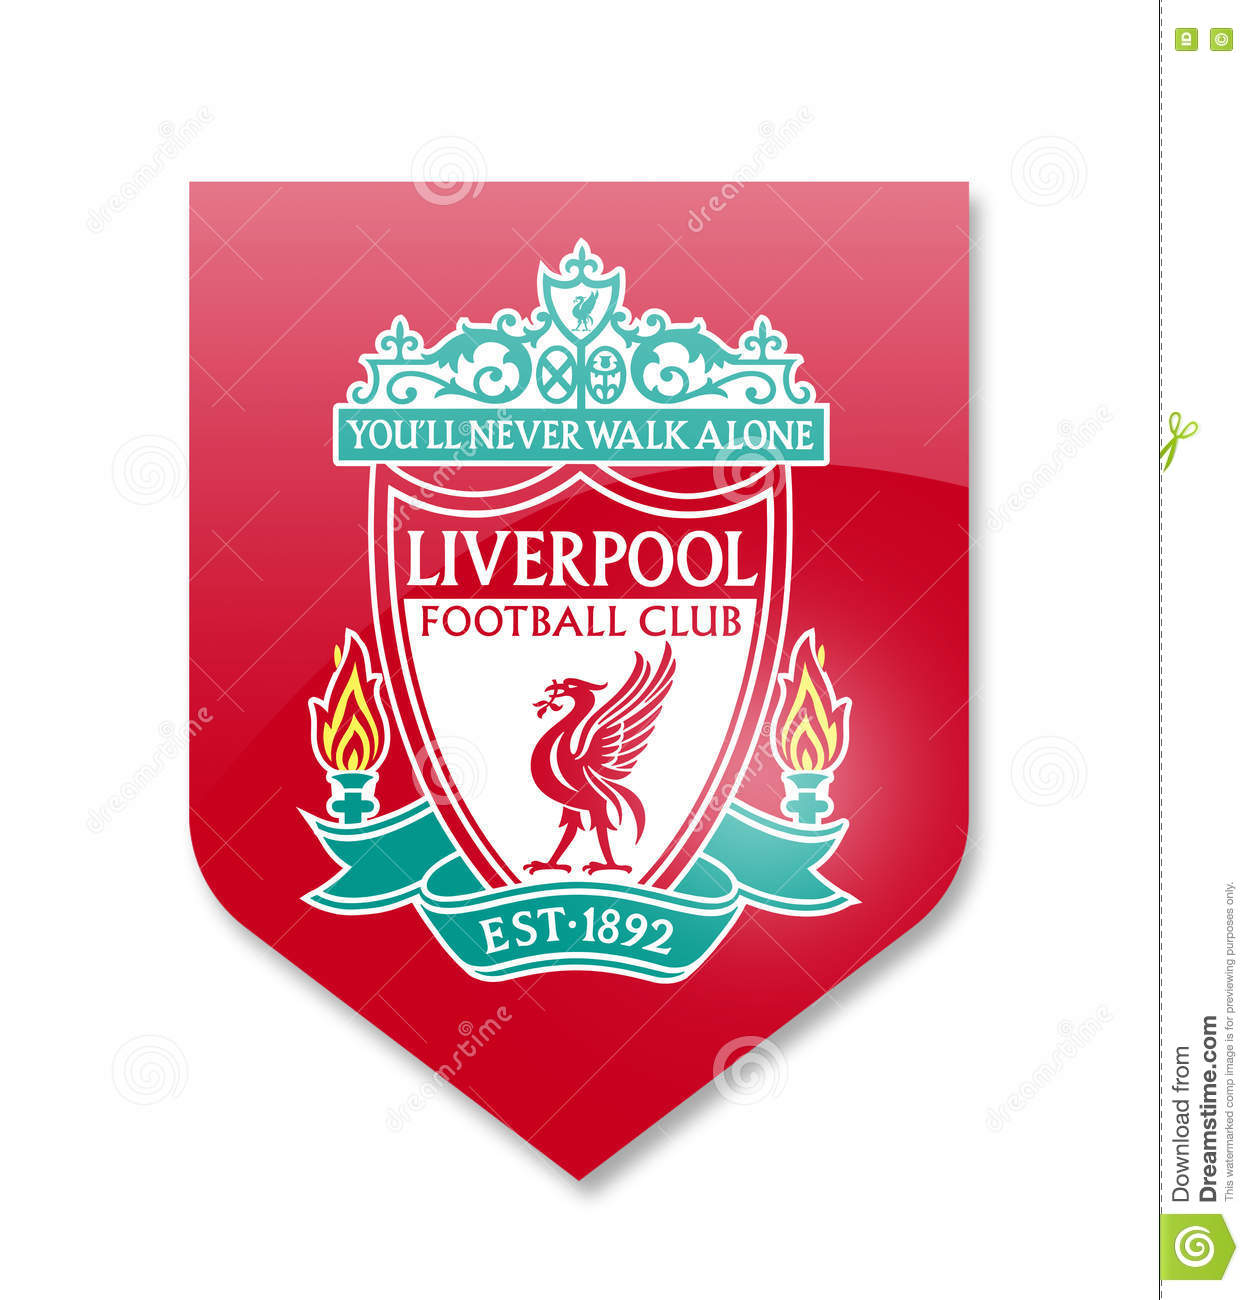 Fc liverpool editorial photography  Illustration of premier - 80893832